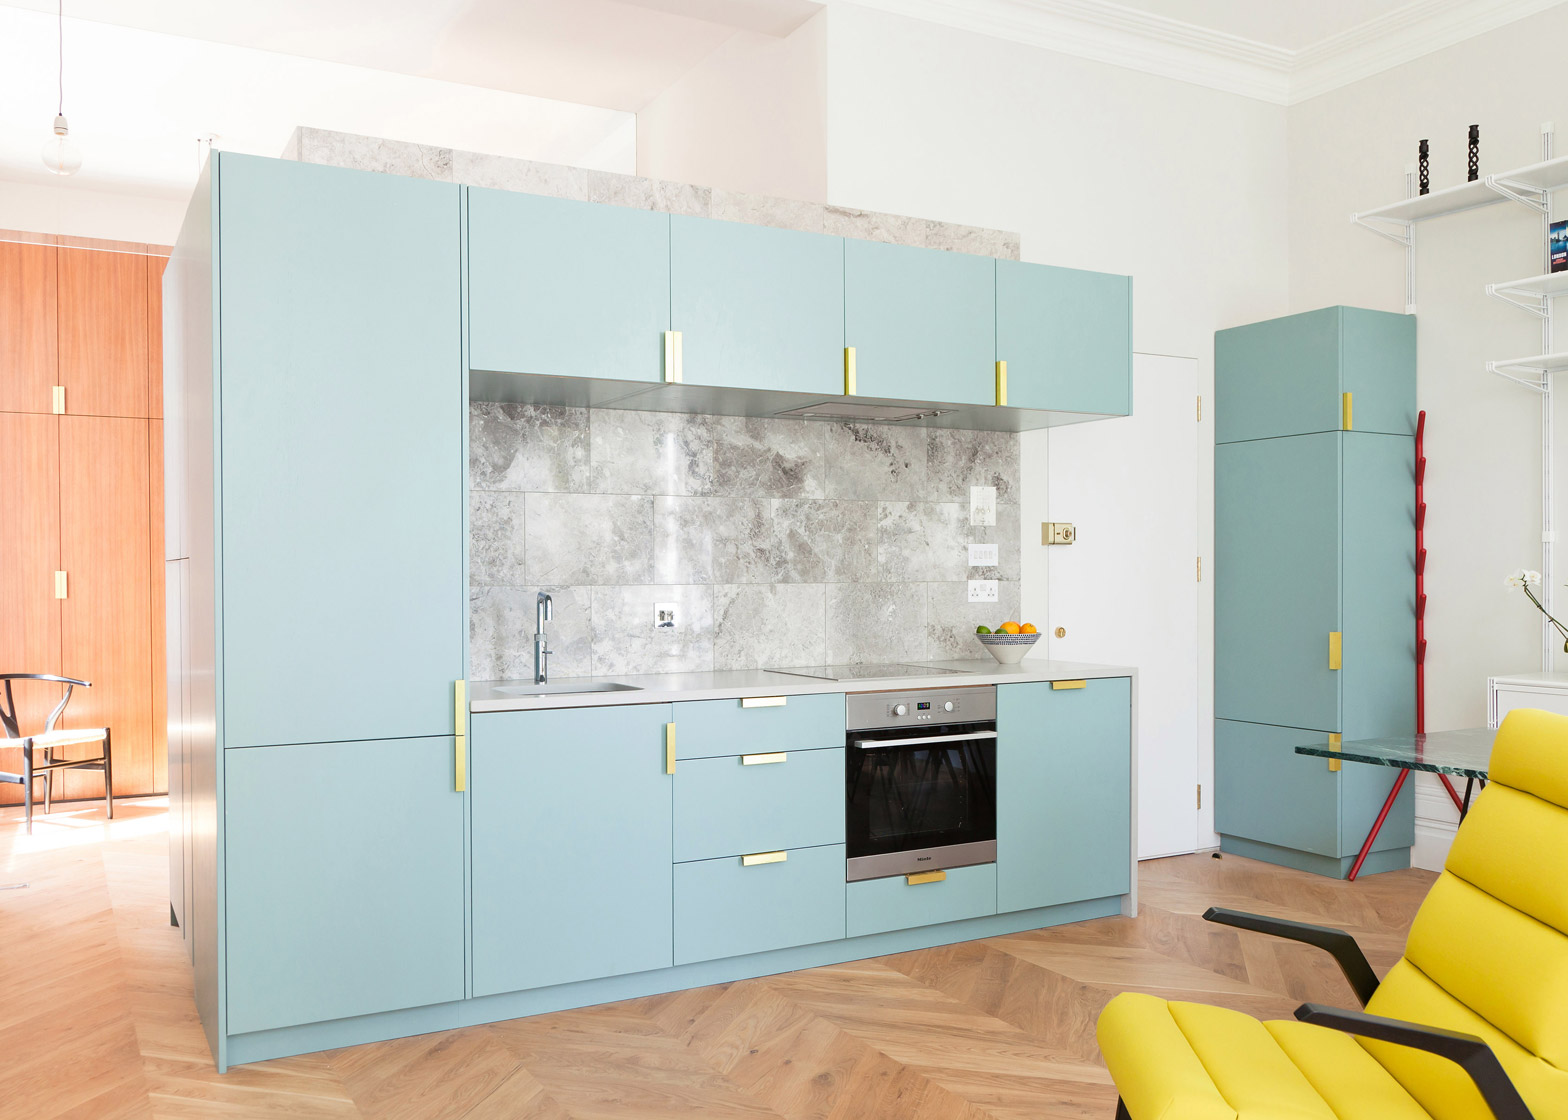 Customise Your Kitchen Cabinets With Bespoke Fronts By Naked